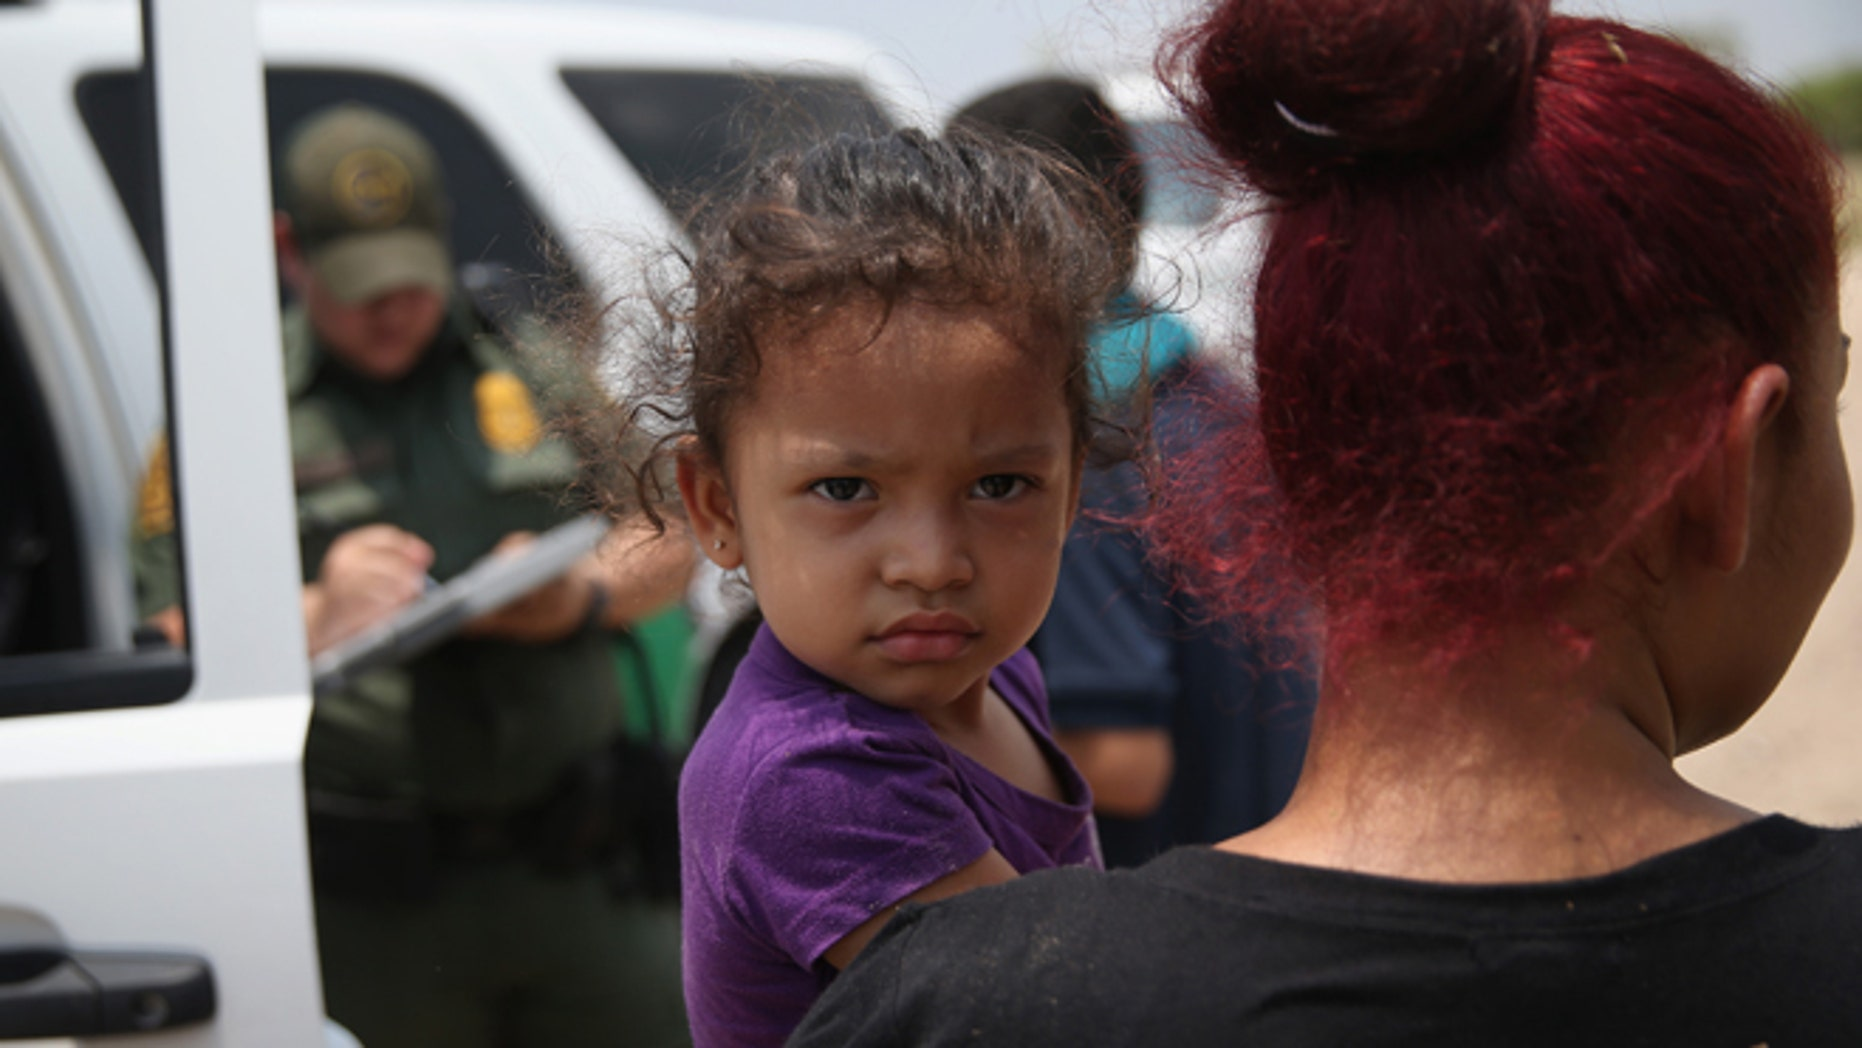 MISSION, TX - JULY 24:  A mother and child, 3, from El Salvador await transport to a processing center for undocumented immigrants after they crossed the Rio Grande into the United States on July 24, 2014 in Mission, Texas. Tens of thousands of immigrant families and unaccompanied minors have crossed illegally into the United States this year and presented themselves to federal agents, causing a humanitarian crisis on the U.S.-Mexico border.  (Photo by John Moore/Getty Images)